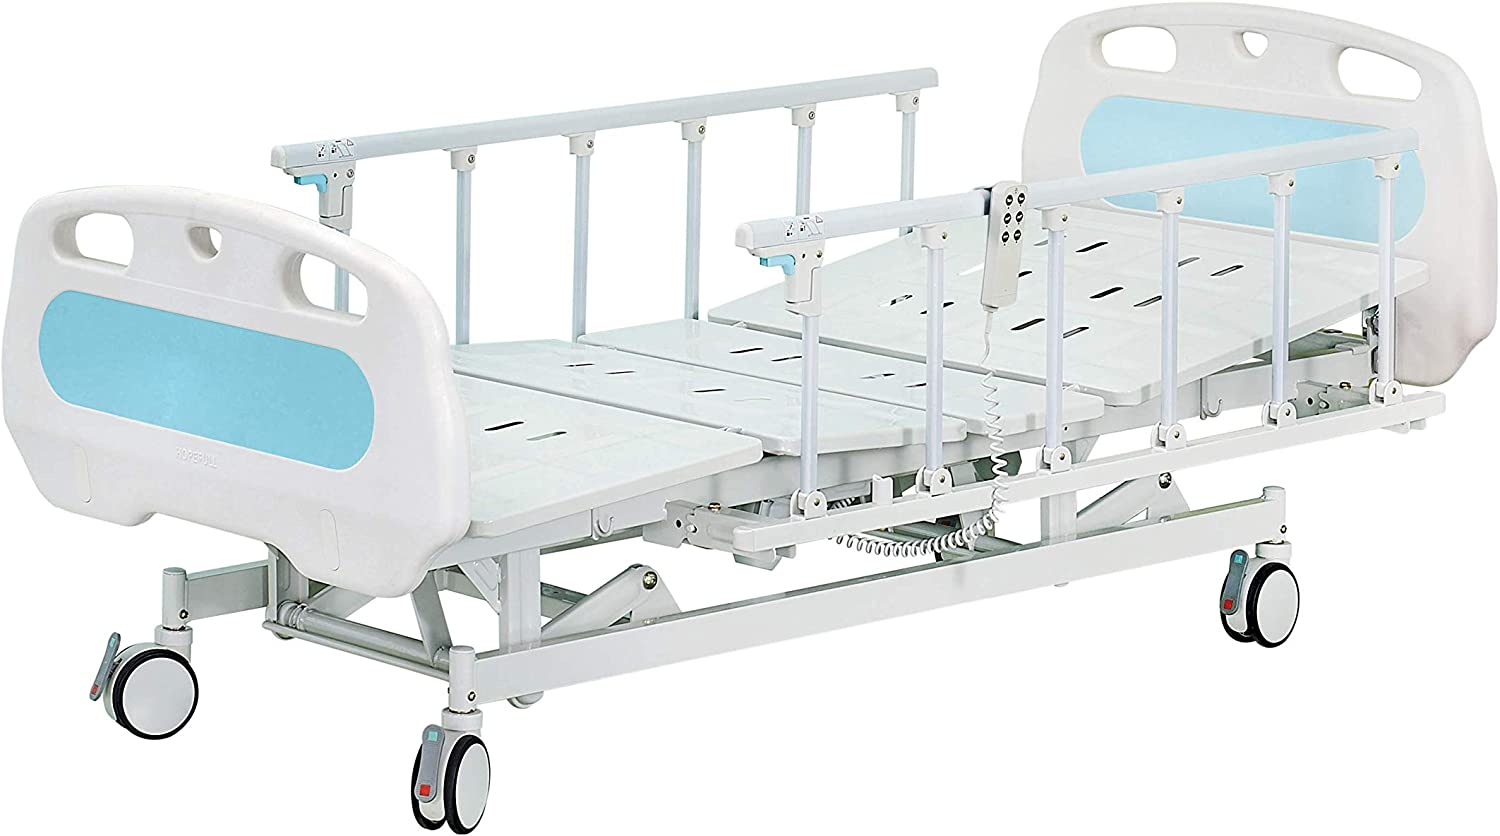 Renting a Medical Bed